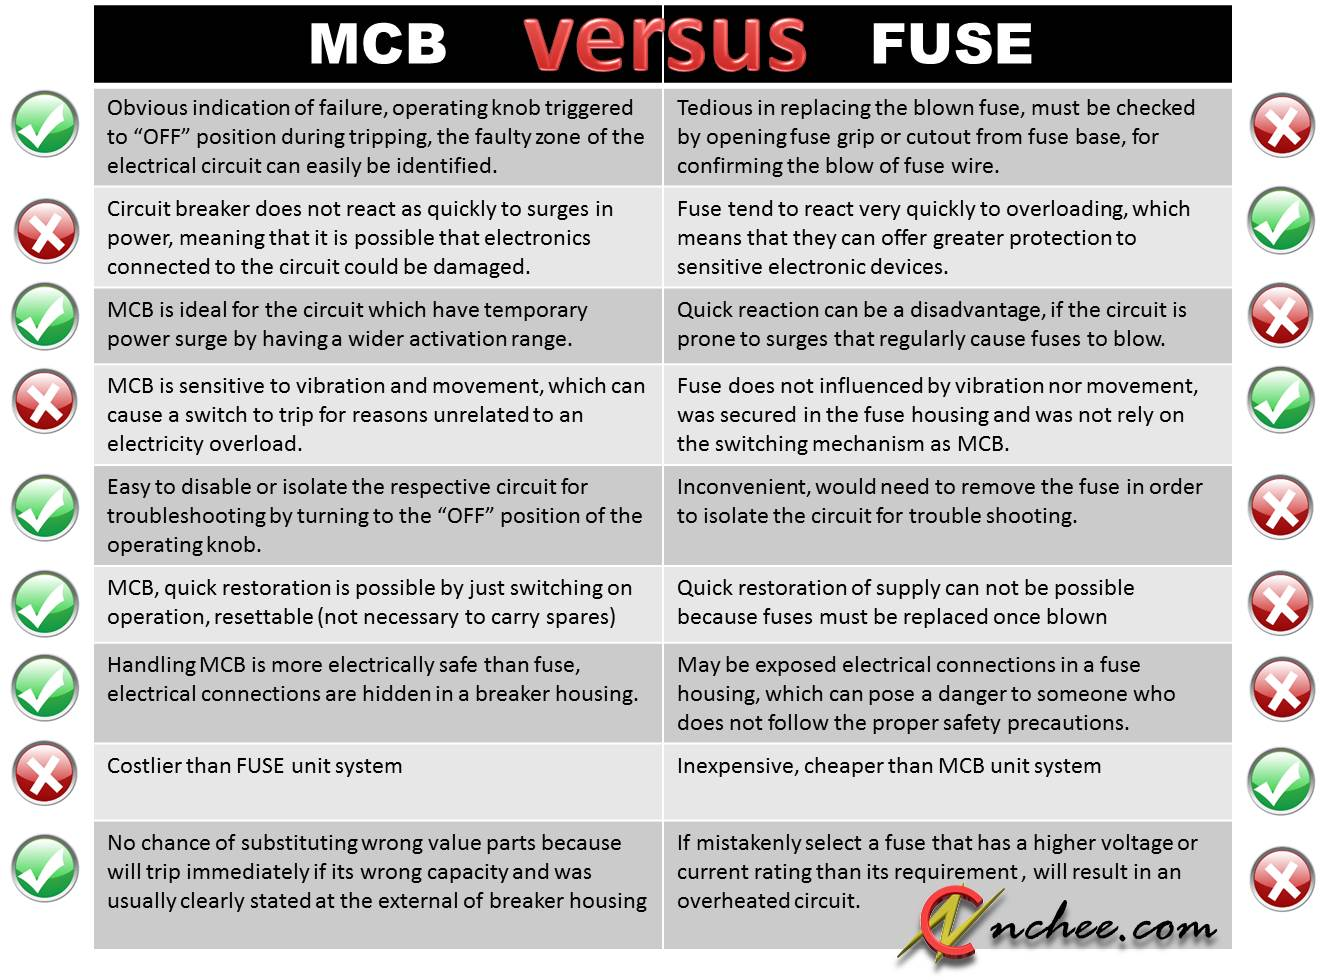 Mcb Versus Fuse Nchee Life Journal How To Troubleshoot Circuit Breakers Mcb1